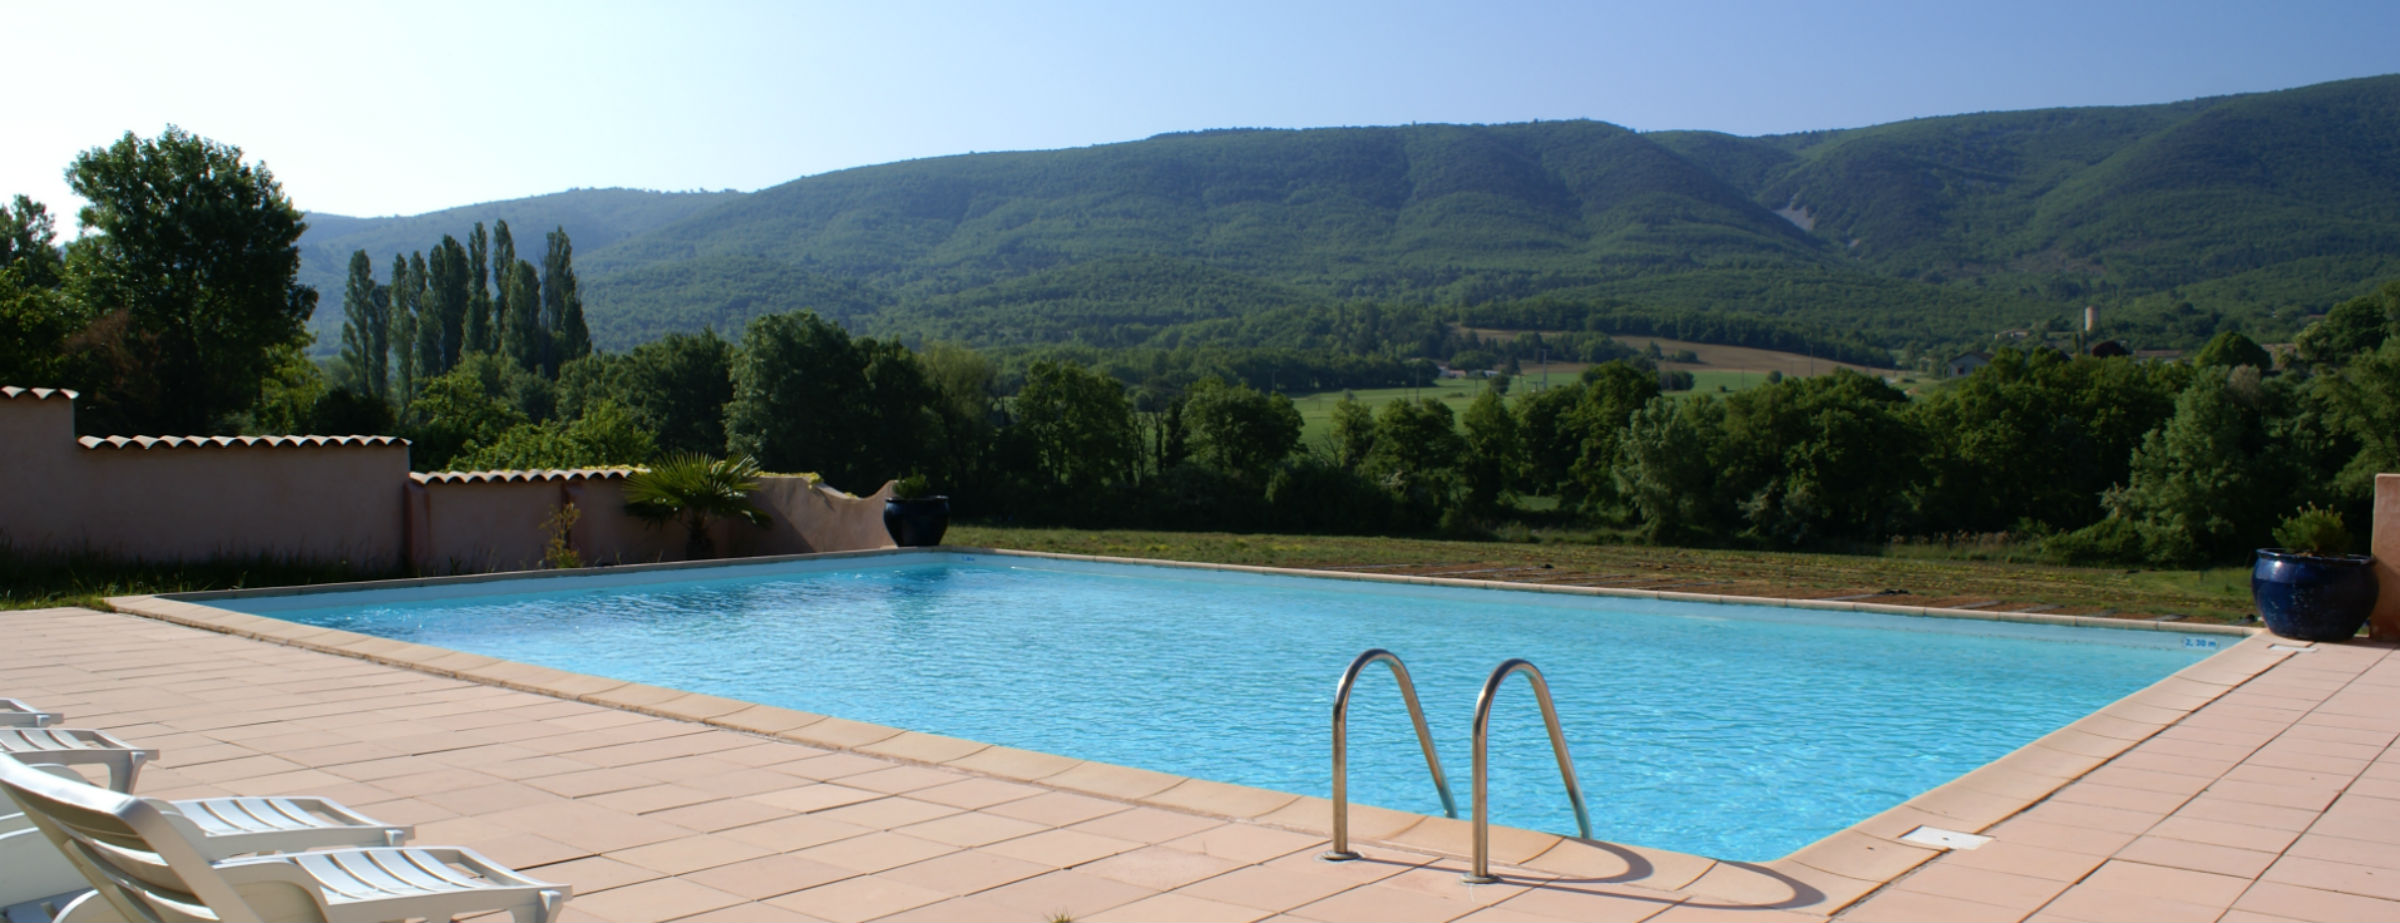 luberon view jdv holidays south of france